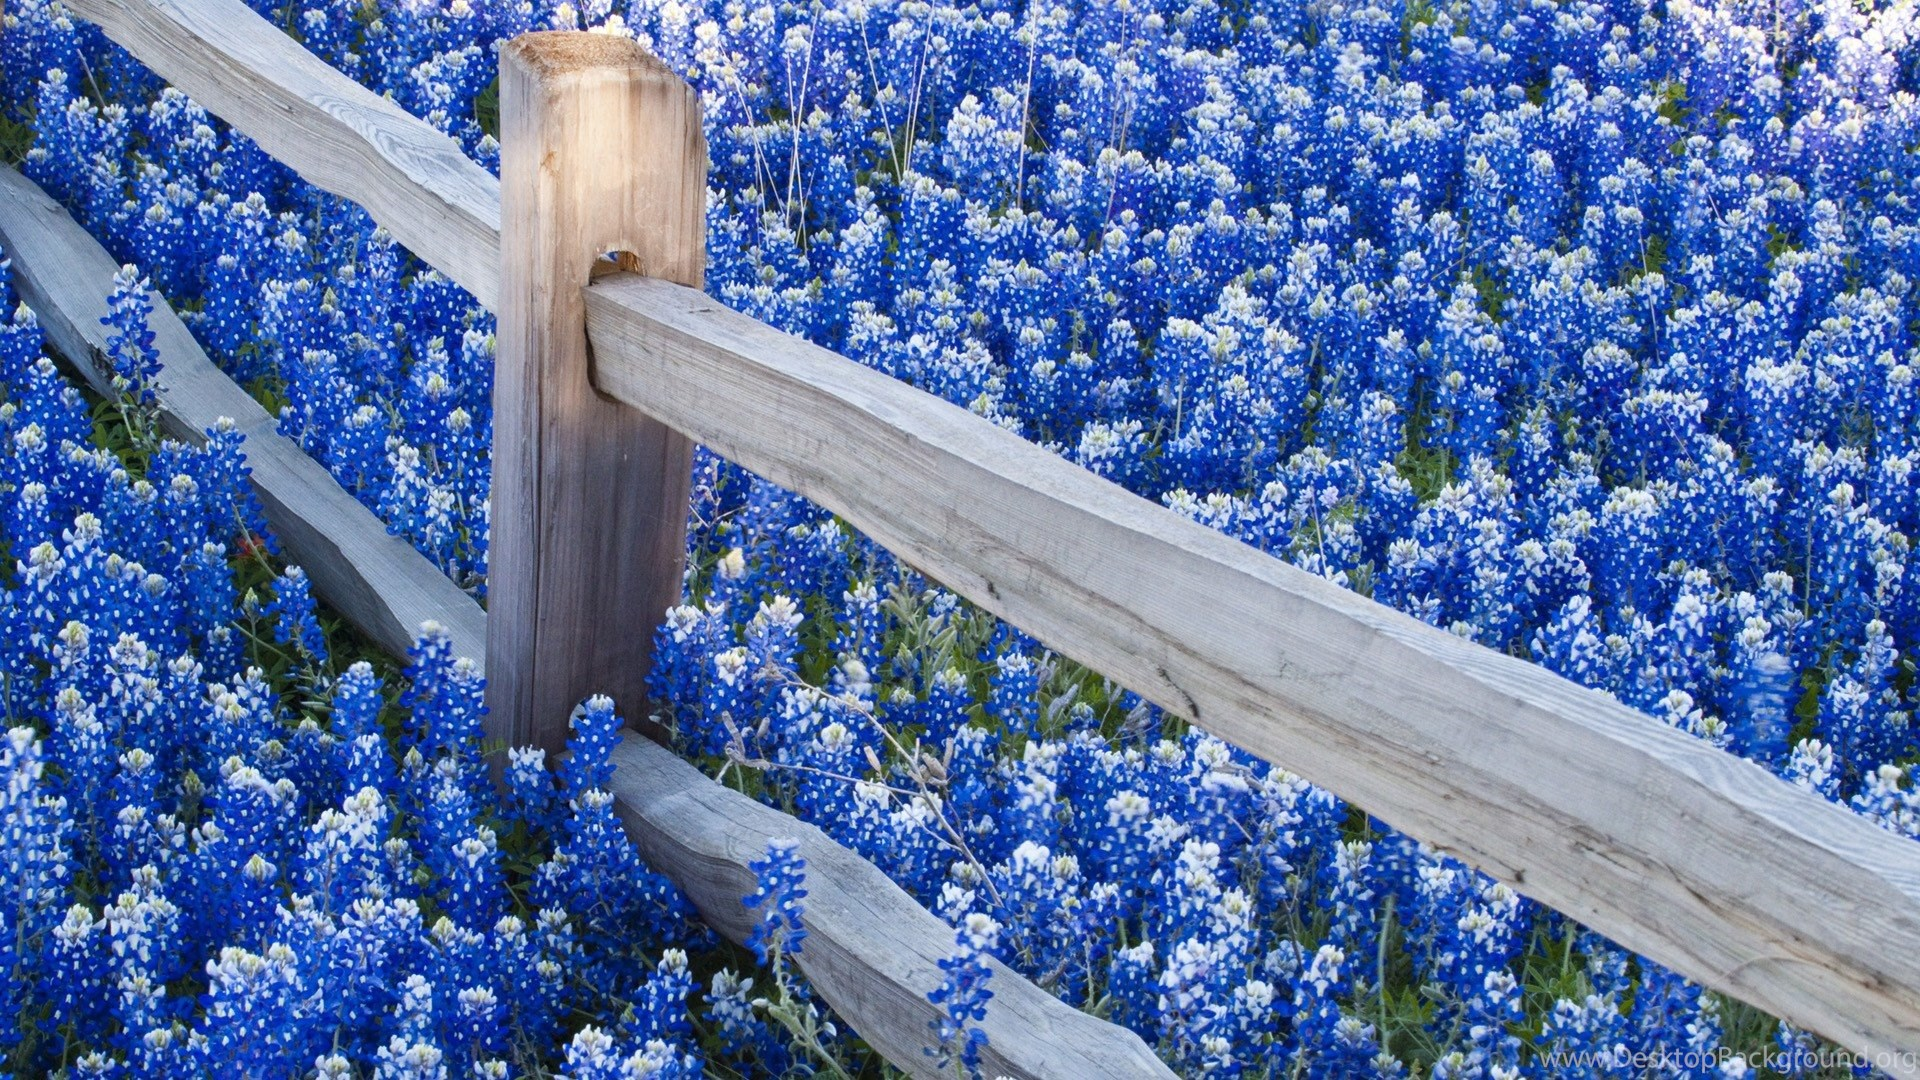 Blue flower hd wallpapers most beautiful flowers pictures popular izmirmasajfo